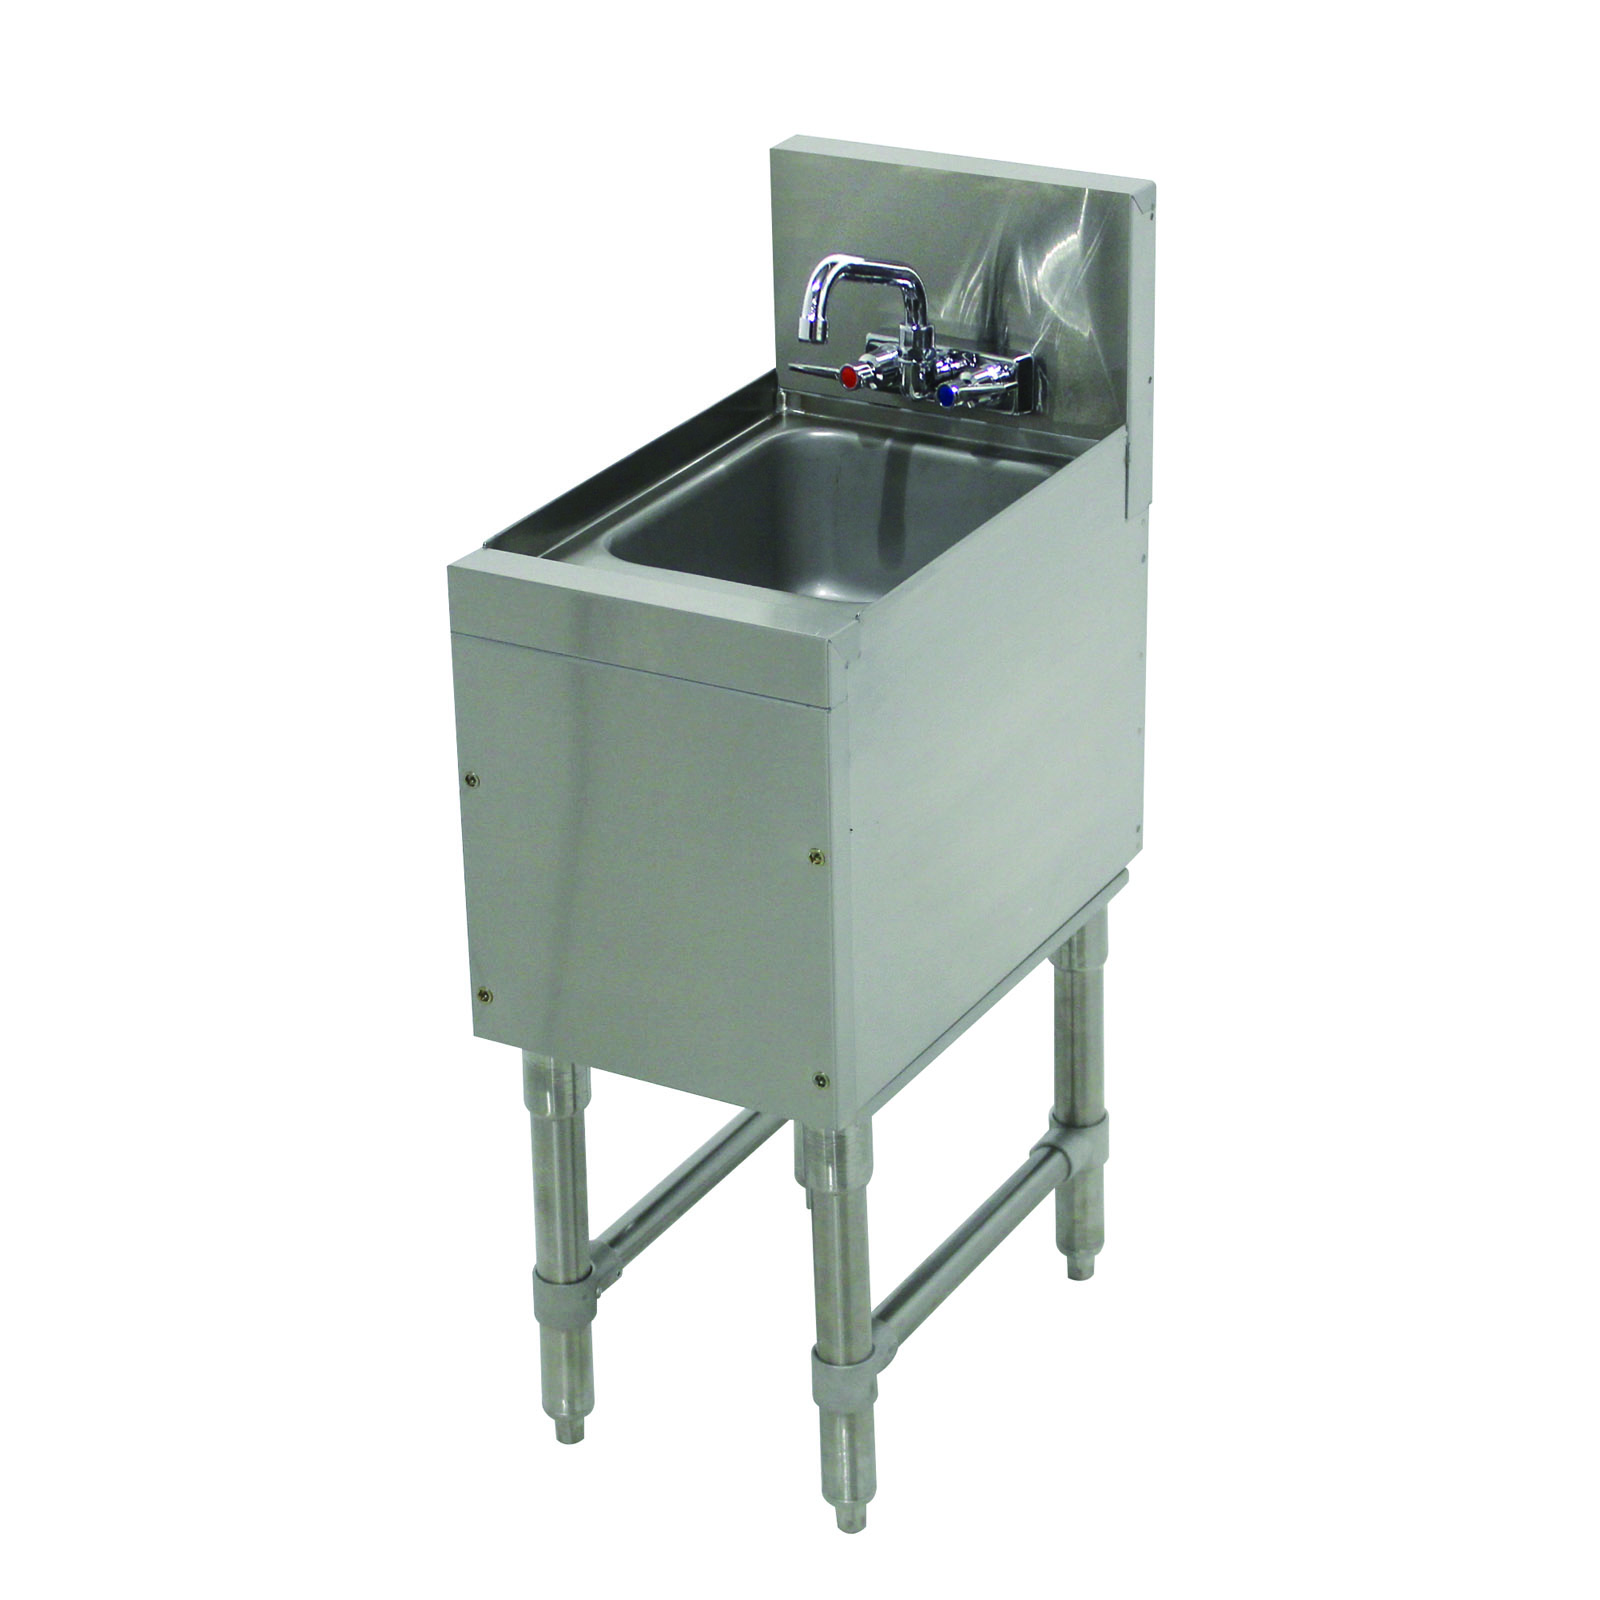 Advance Tabco PRHS-19-18 underbar hand sink unit